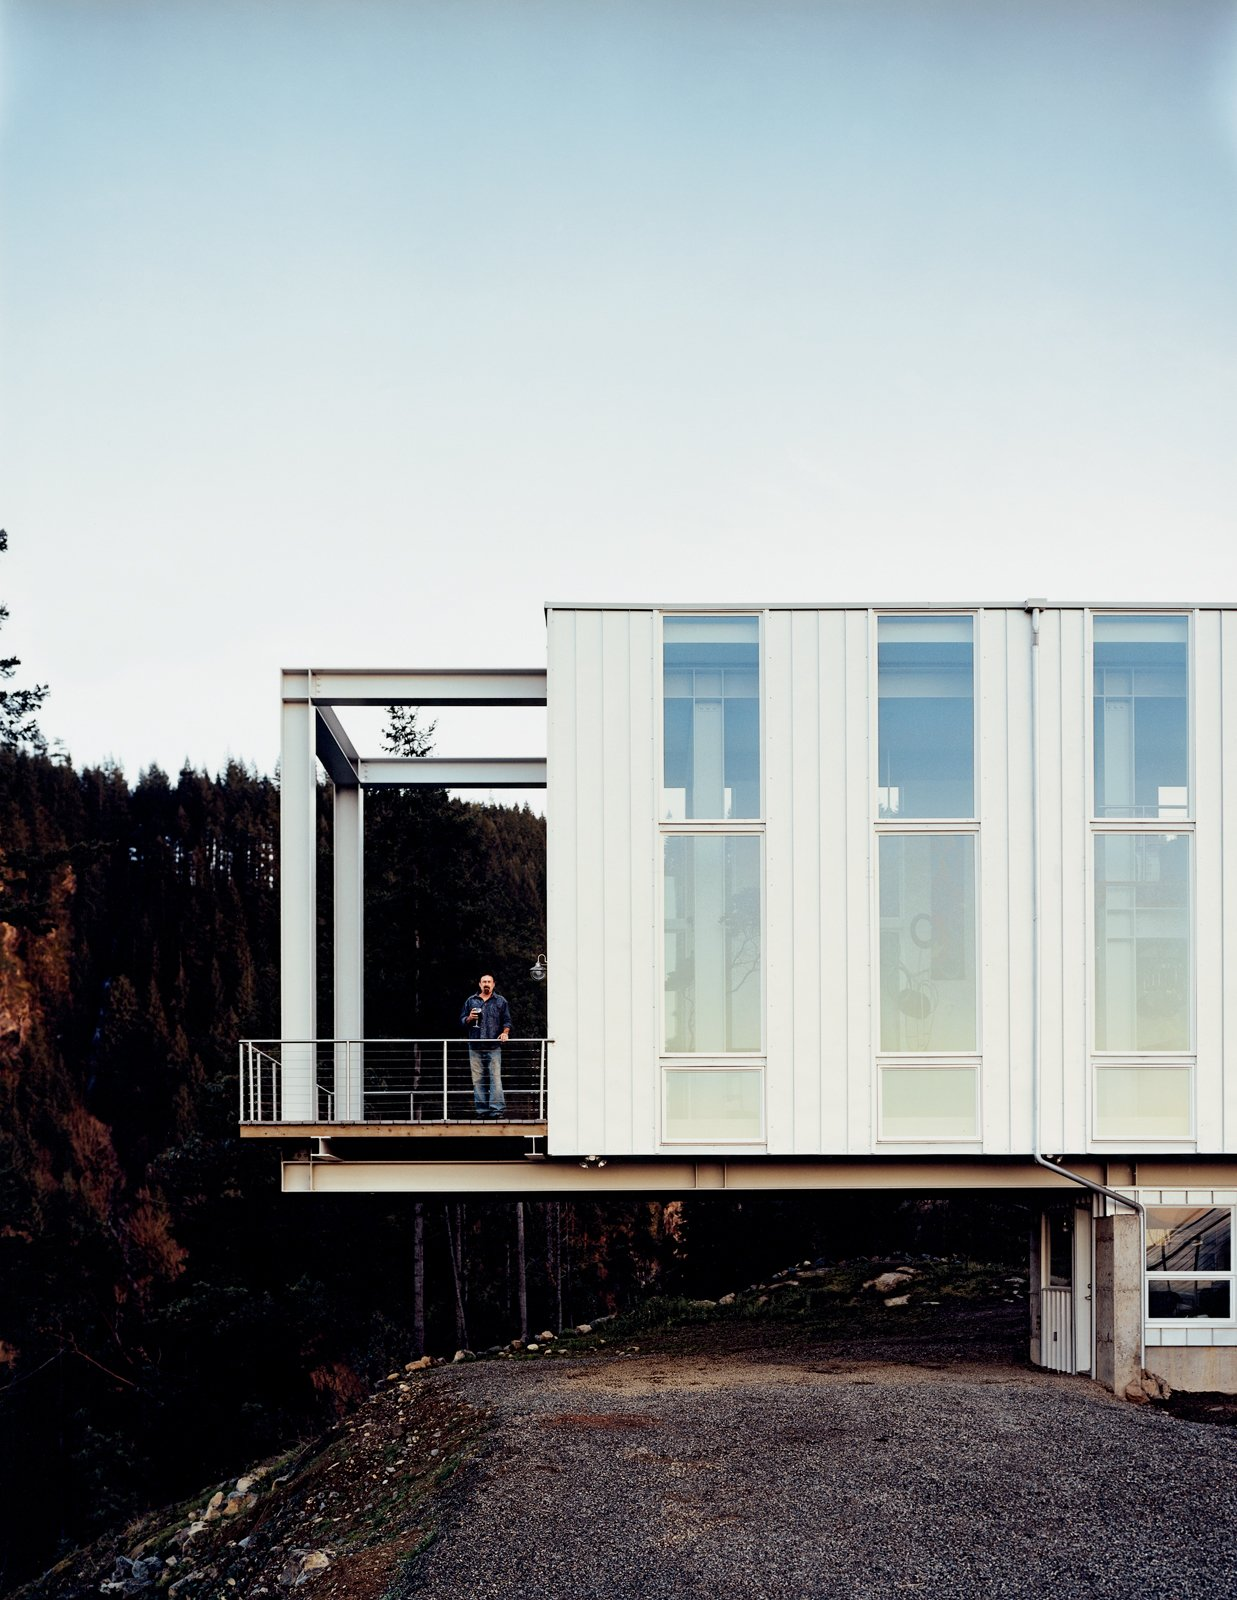 """Architect Peter Anderson explains that """"the floating nature of the design would not have been possible with conventional onsite framing techniques, nor any of the currently marketed modular home designs."""" Using a heavy structural steel frame, engineered wood spline beam system, and structural insulated panels, the architects created a truly unique hybrid structural system and, in the end, a home.  Modern Spaces in the Pacific Northwest by William Lamb from On a Rock in a Hard Place"""